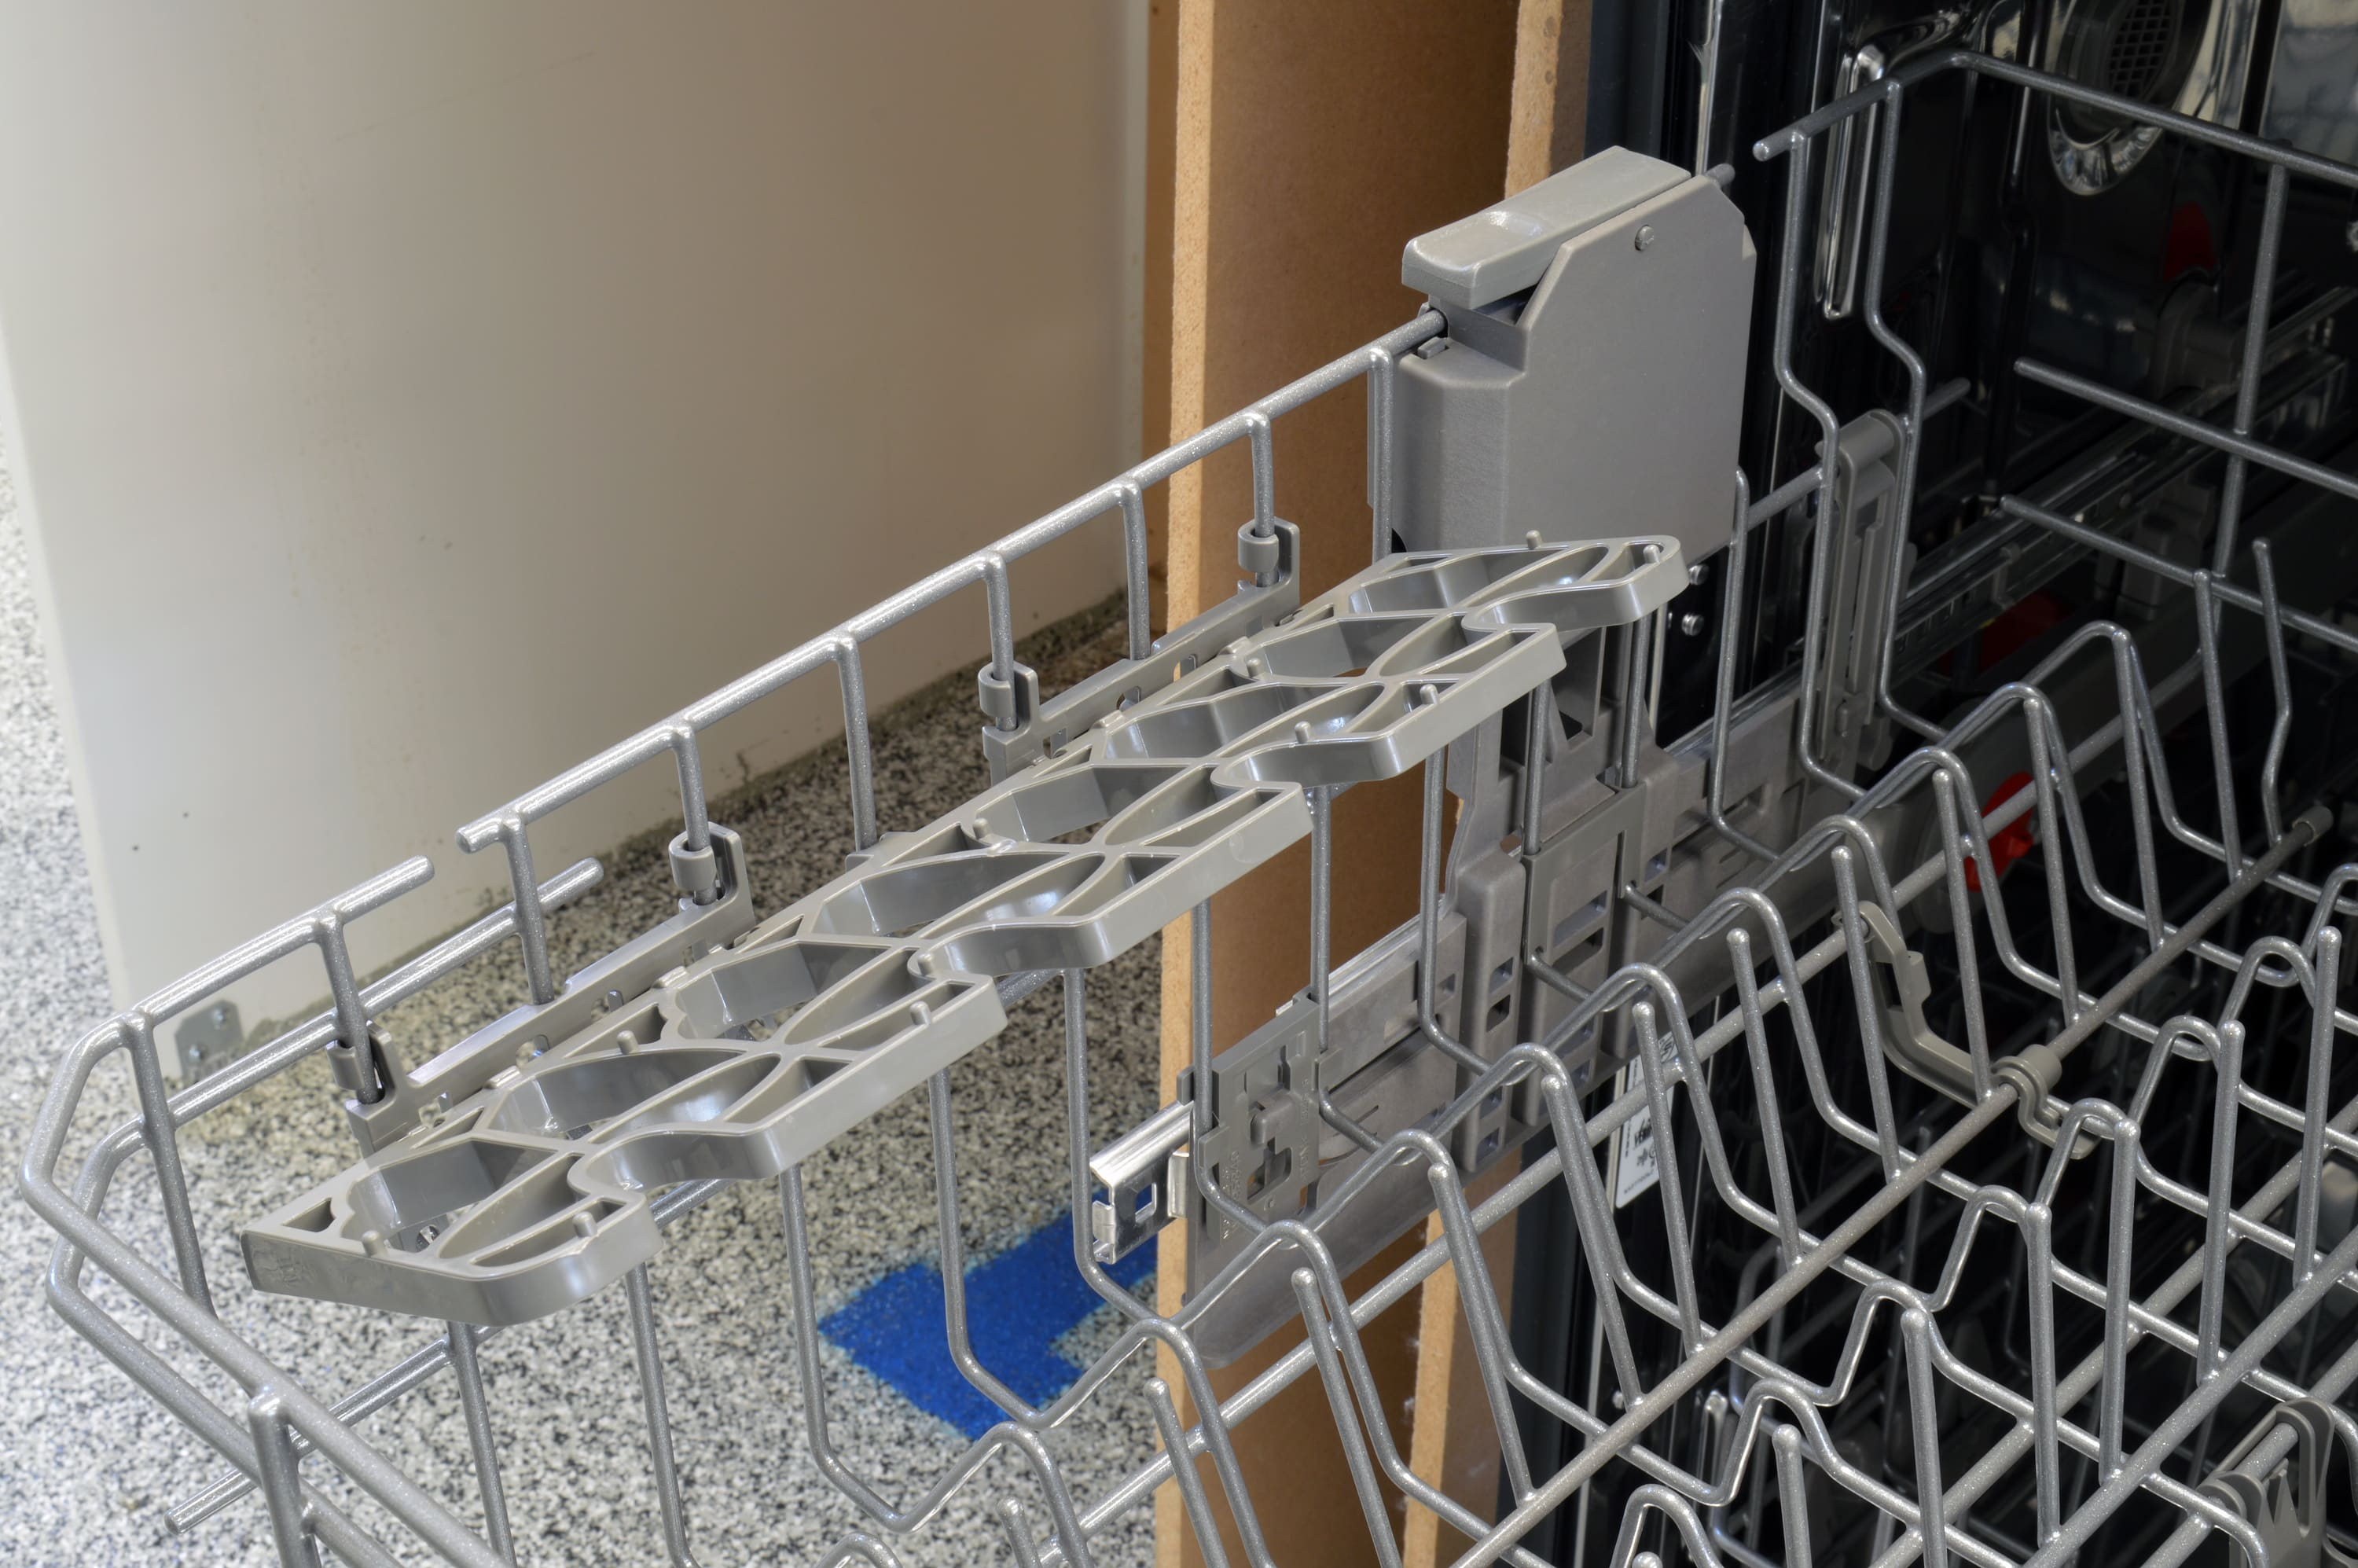 Kenmore Elite 14793 cup shelf and height adjustment